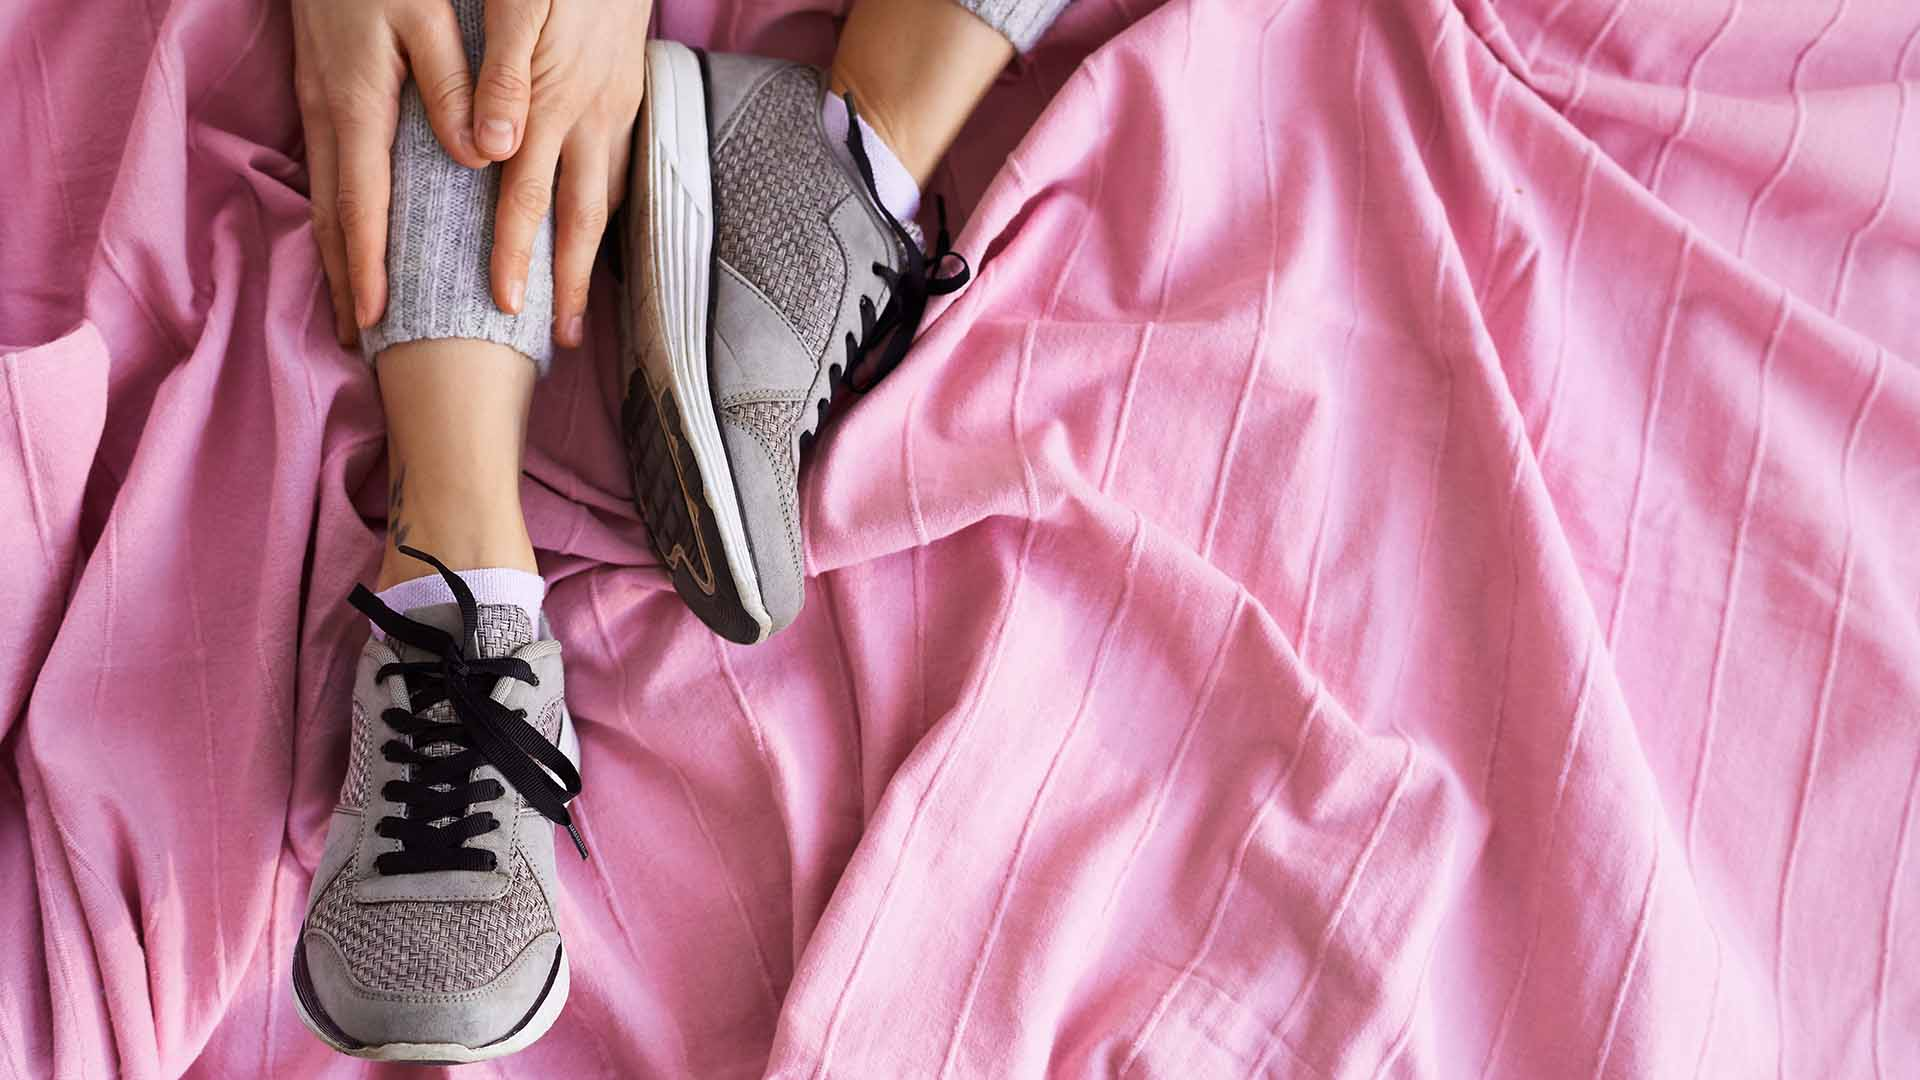 High angle view of female athlete in wool sport pants and sneakers sitting on bed, touching her ankle with both hands and stretching.